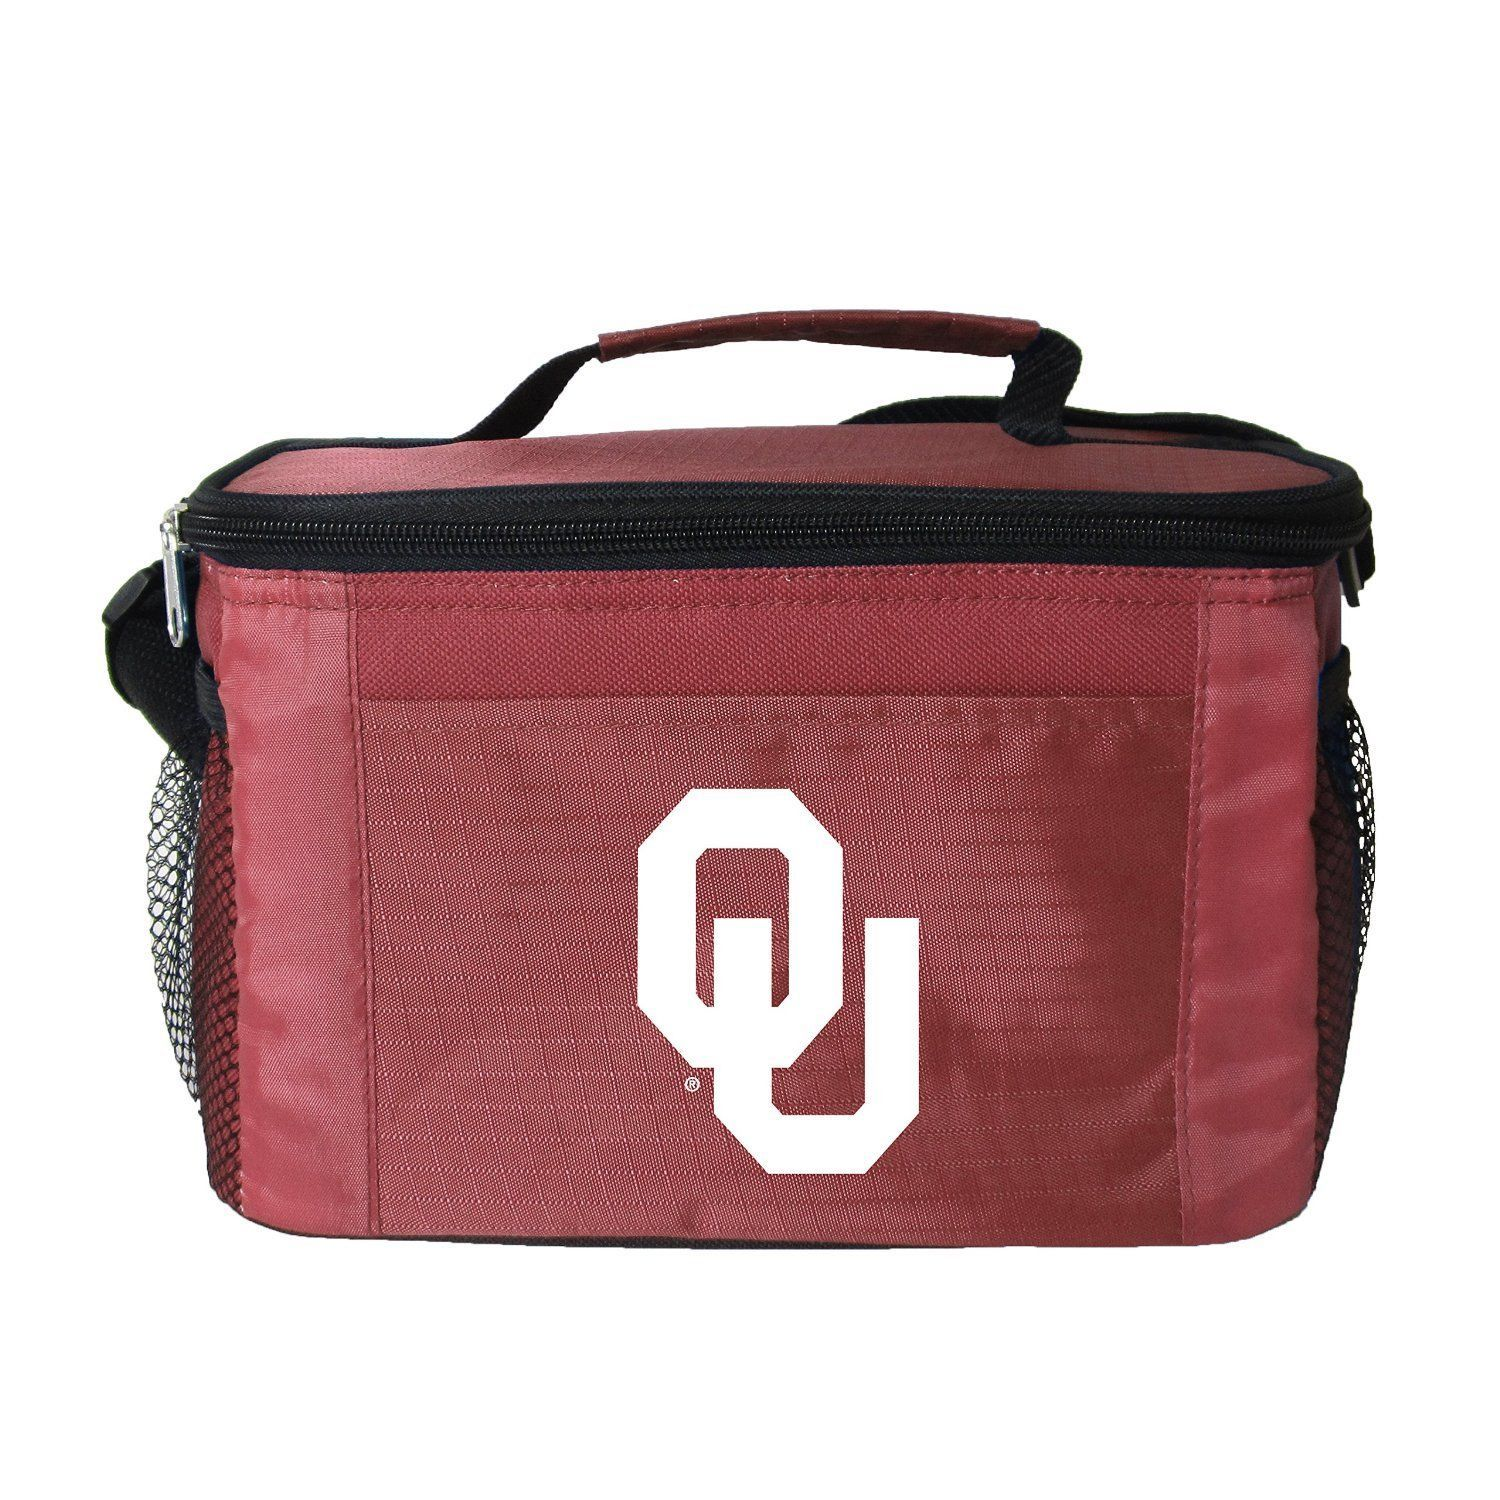 OKLAHOMA SOONERS LUNCH TOTE 6 PK BEER SODA TEAM LOGO KOOLER BAG NCAA